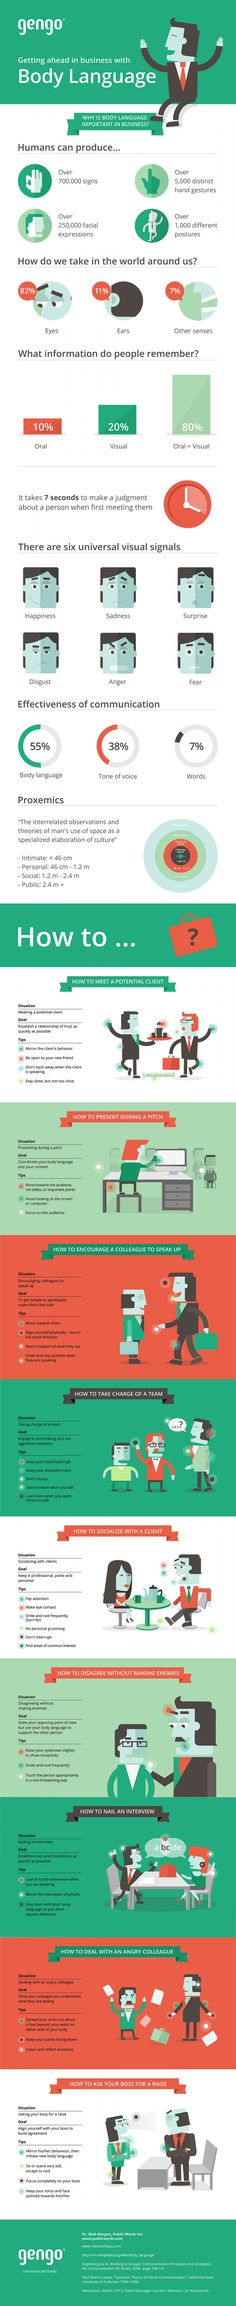 Body Language in Presentations... Check this out!